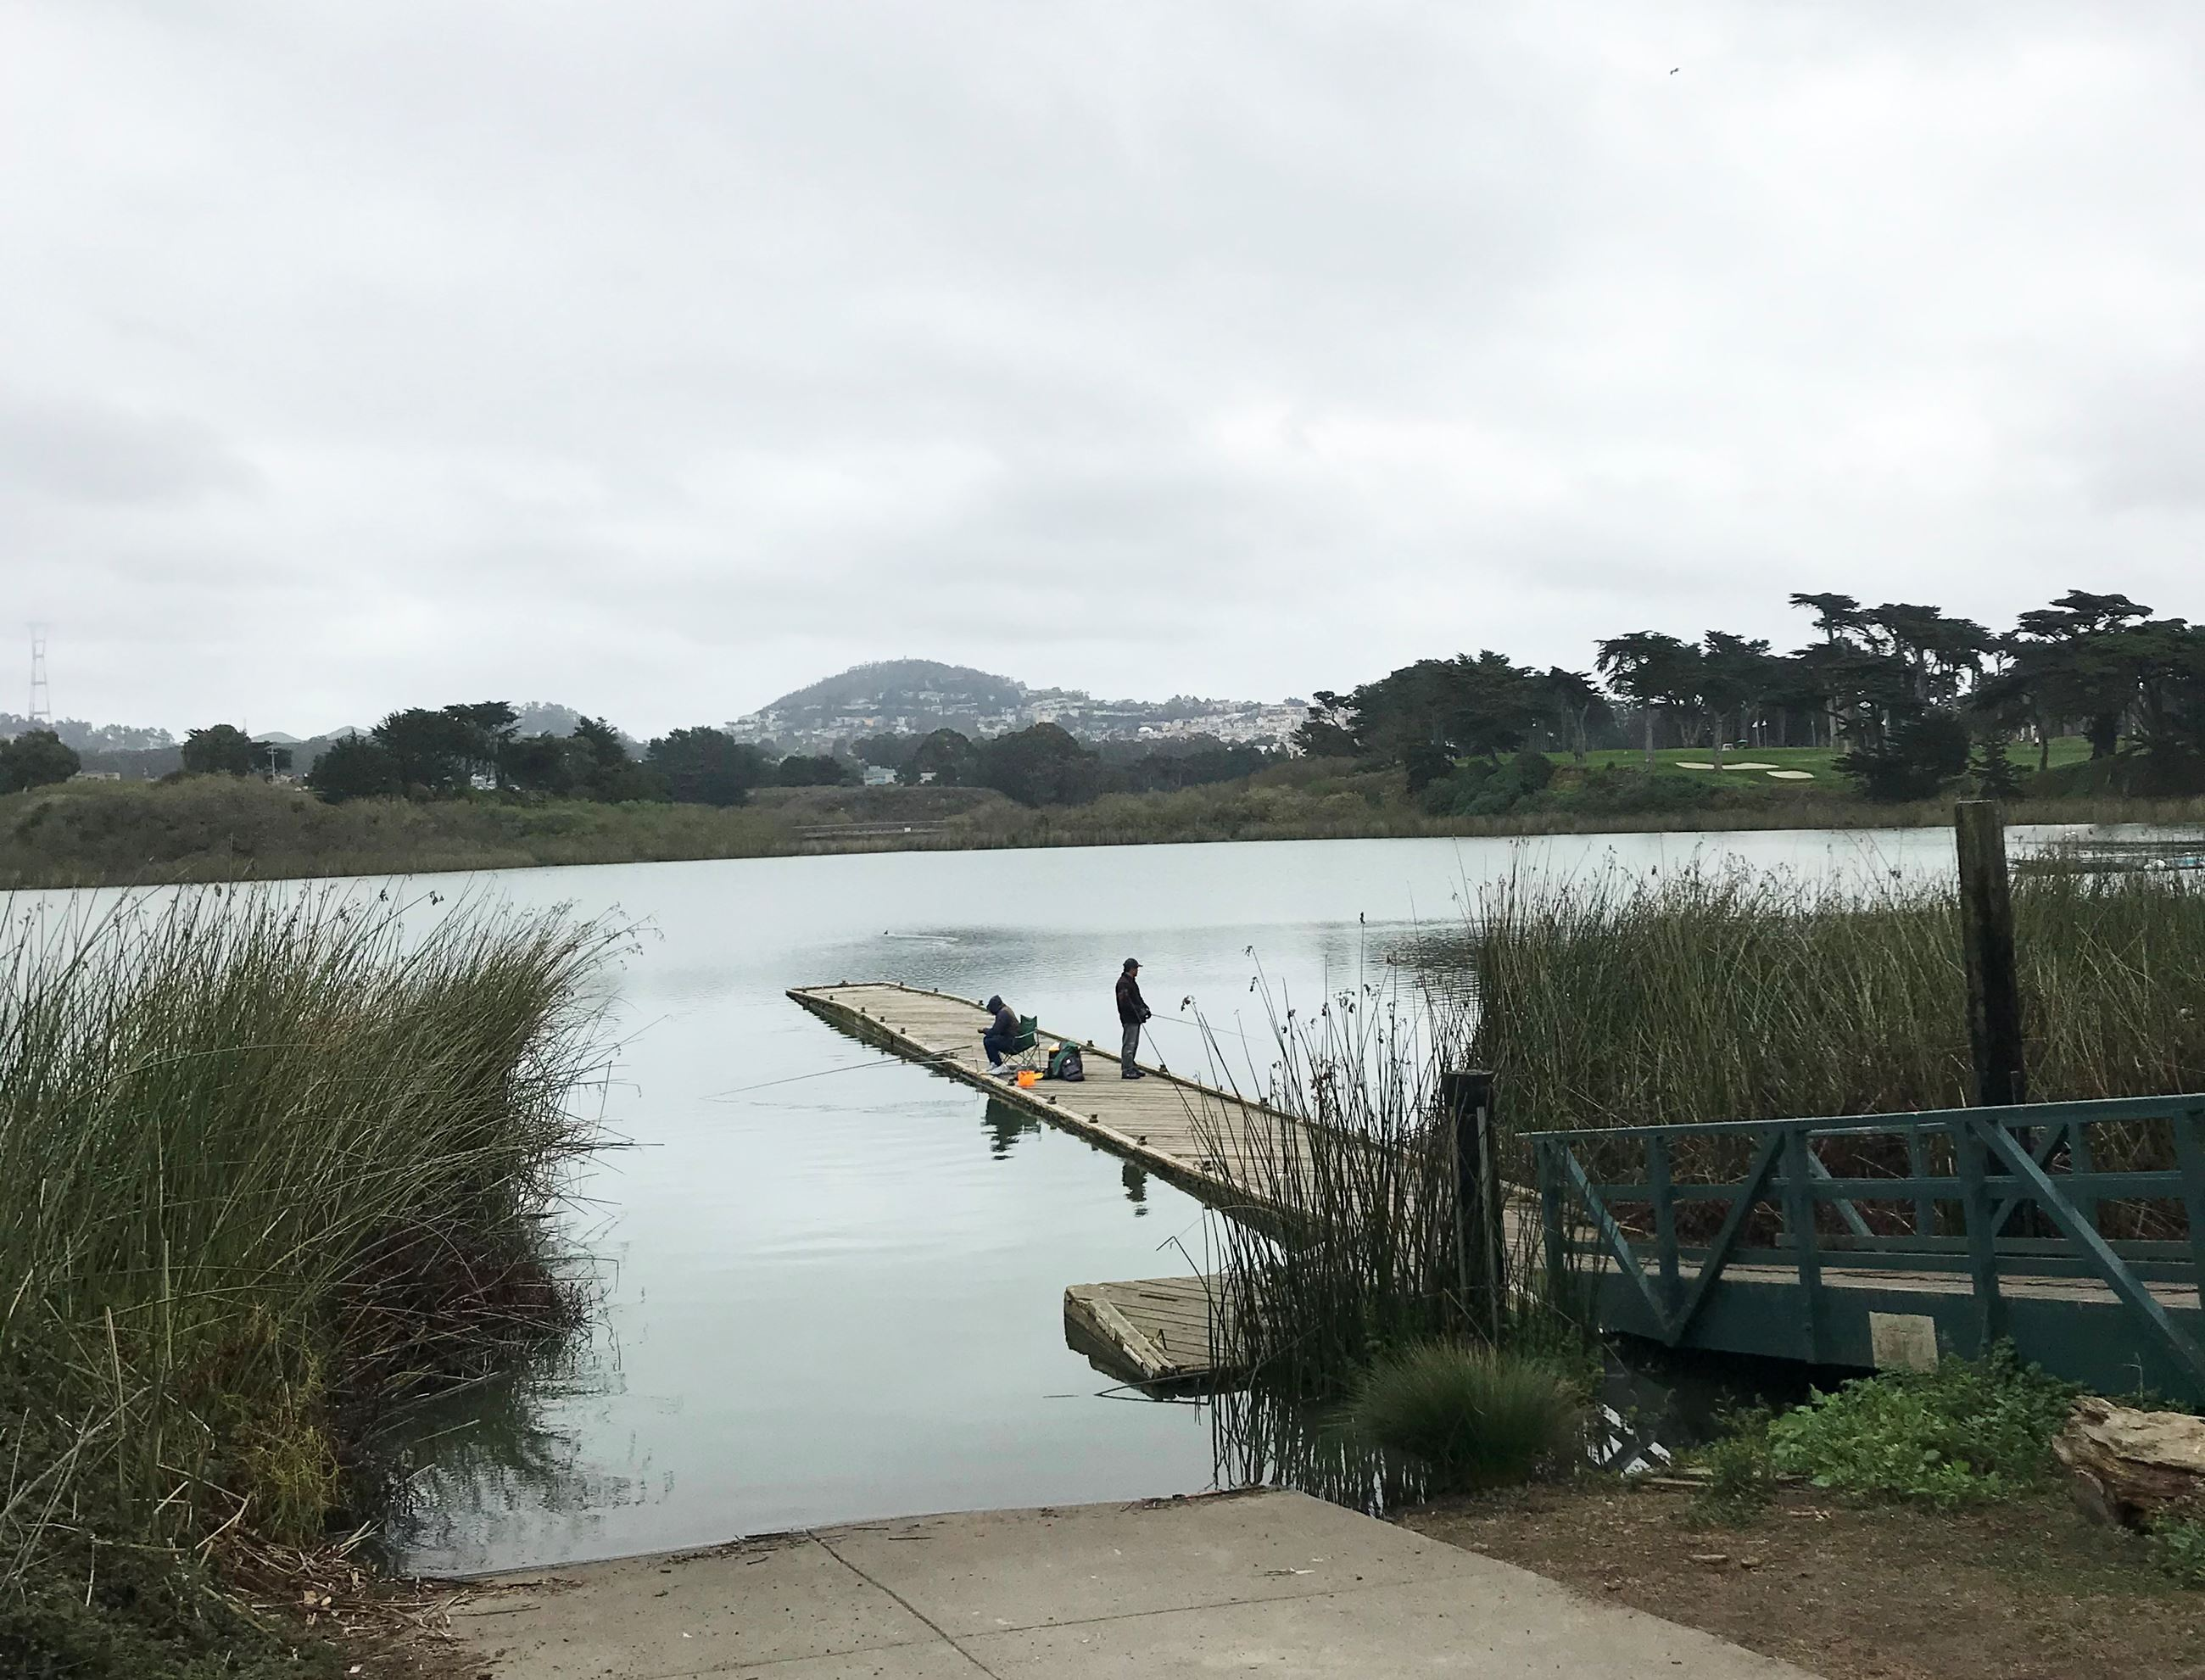 View of Lake Merced Boat Dock with two people fishing on the Lake